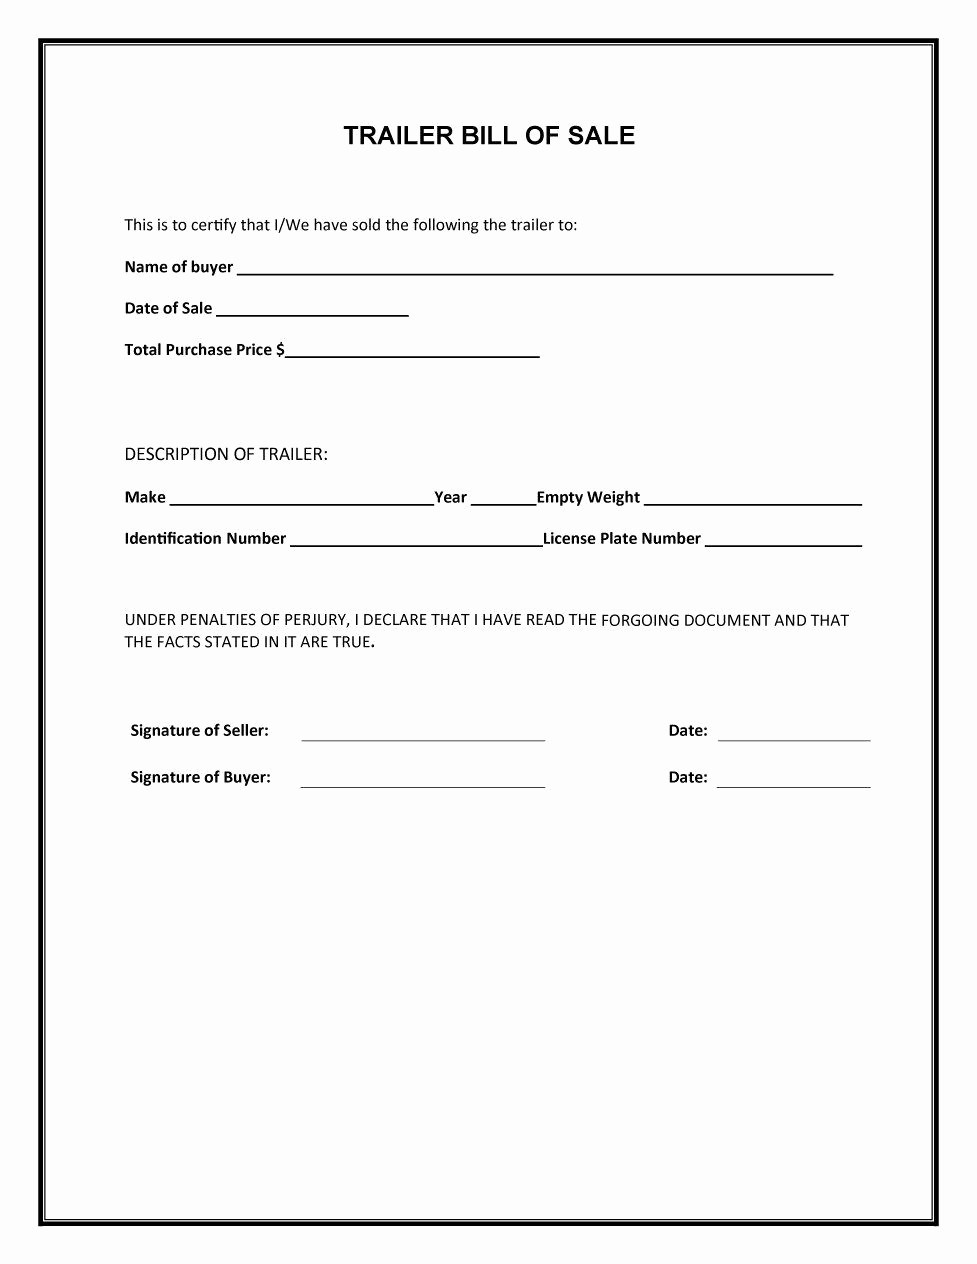 Bill Of Sale Document Template Best Of 45 Fee Printable Bill Of Sale Templates Car Boat Gun